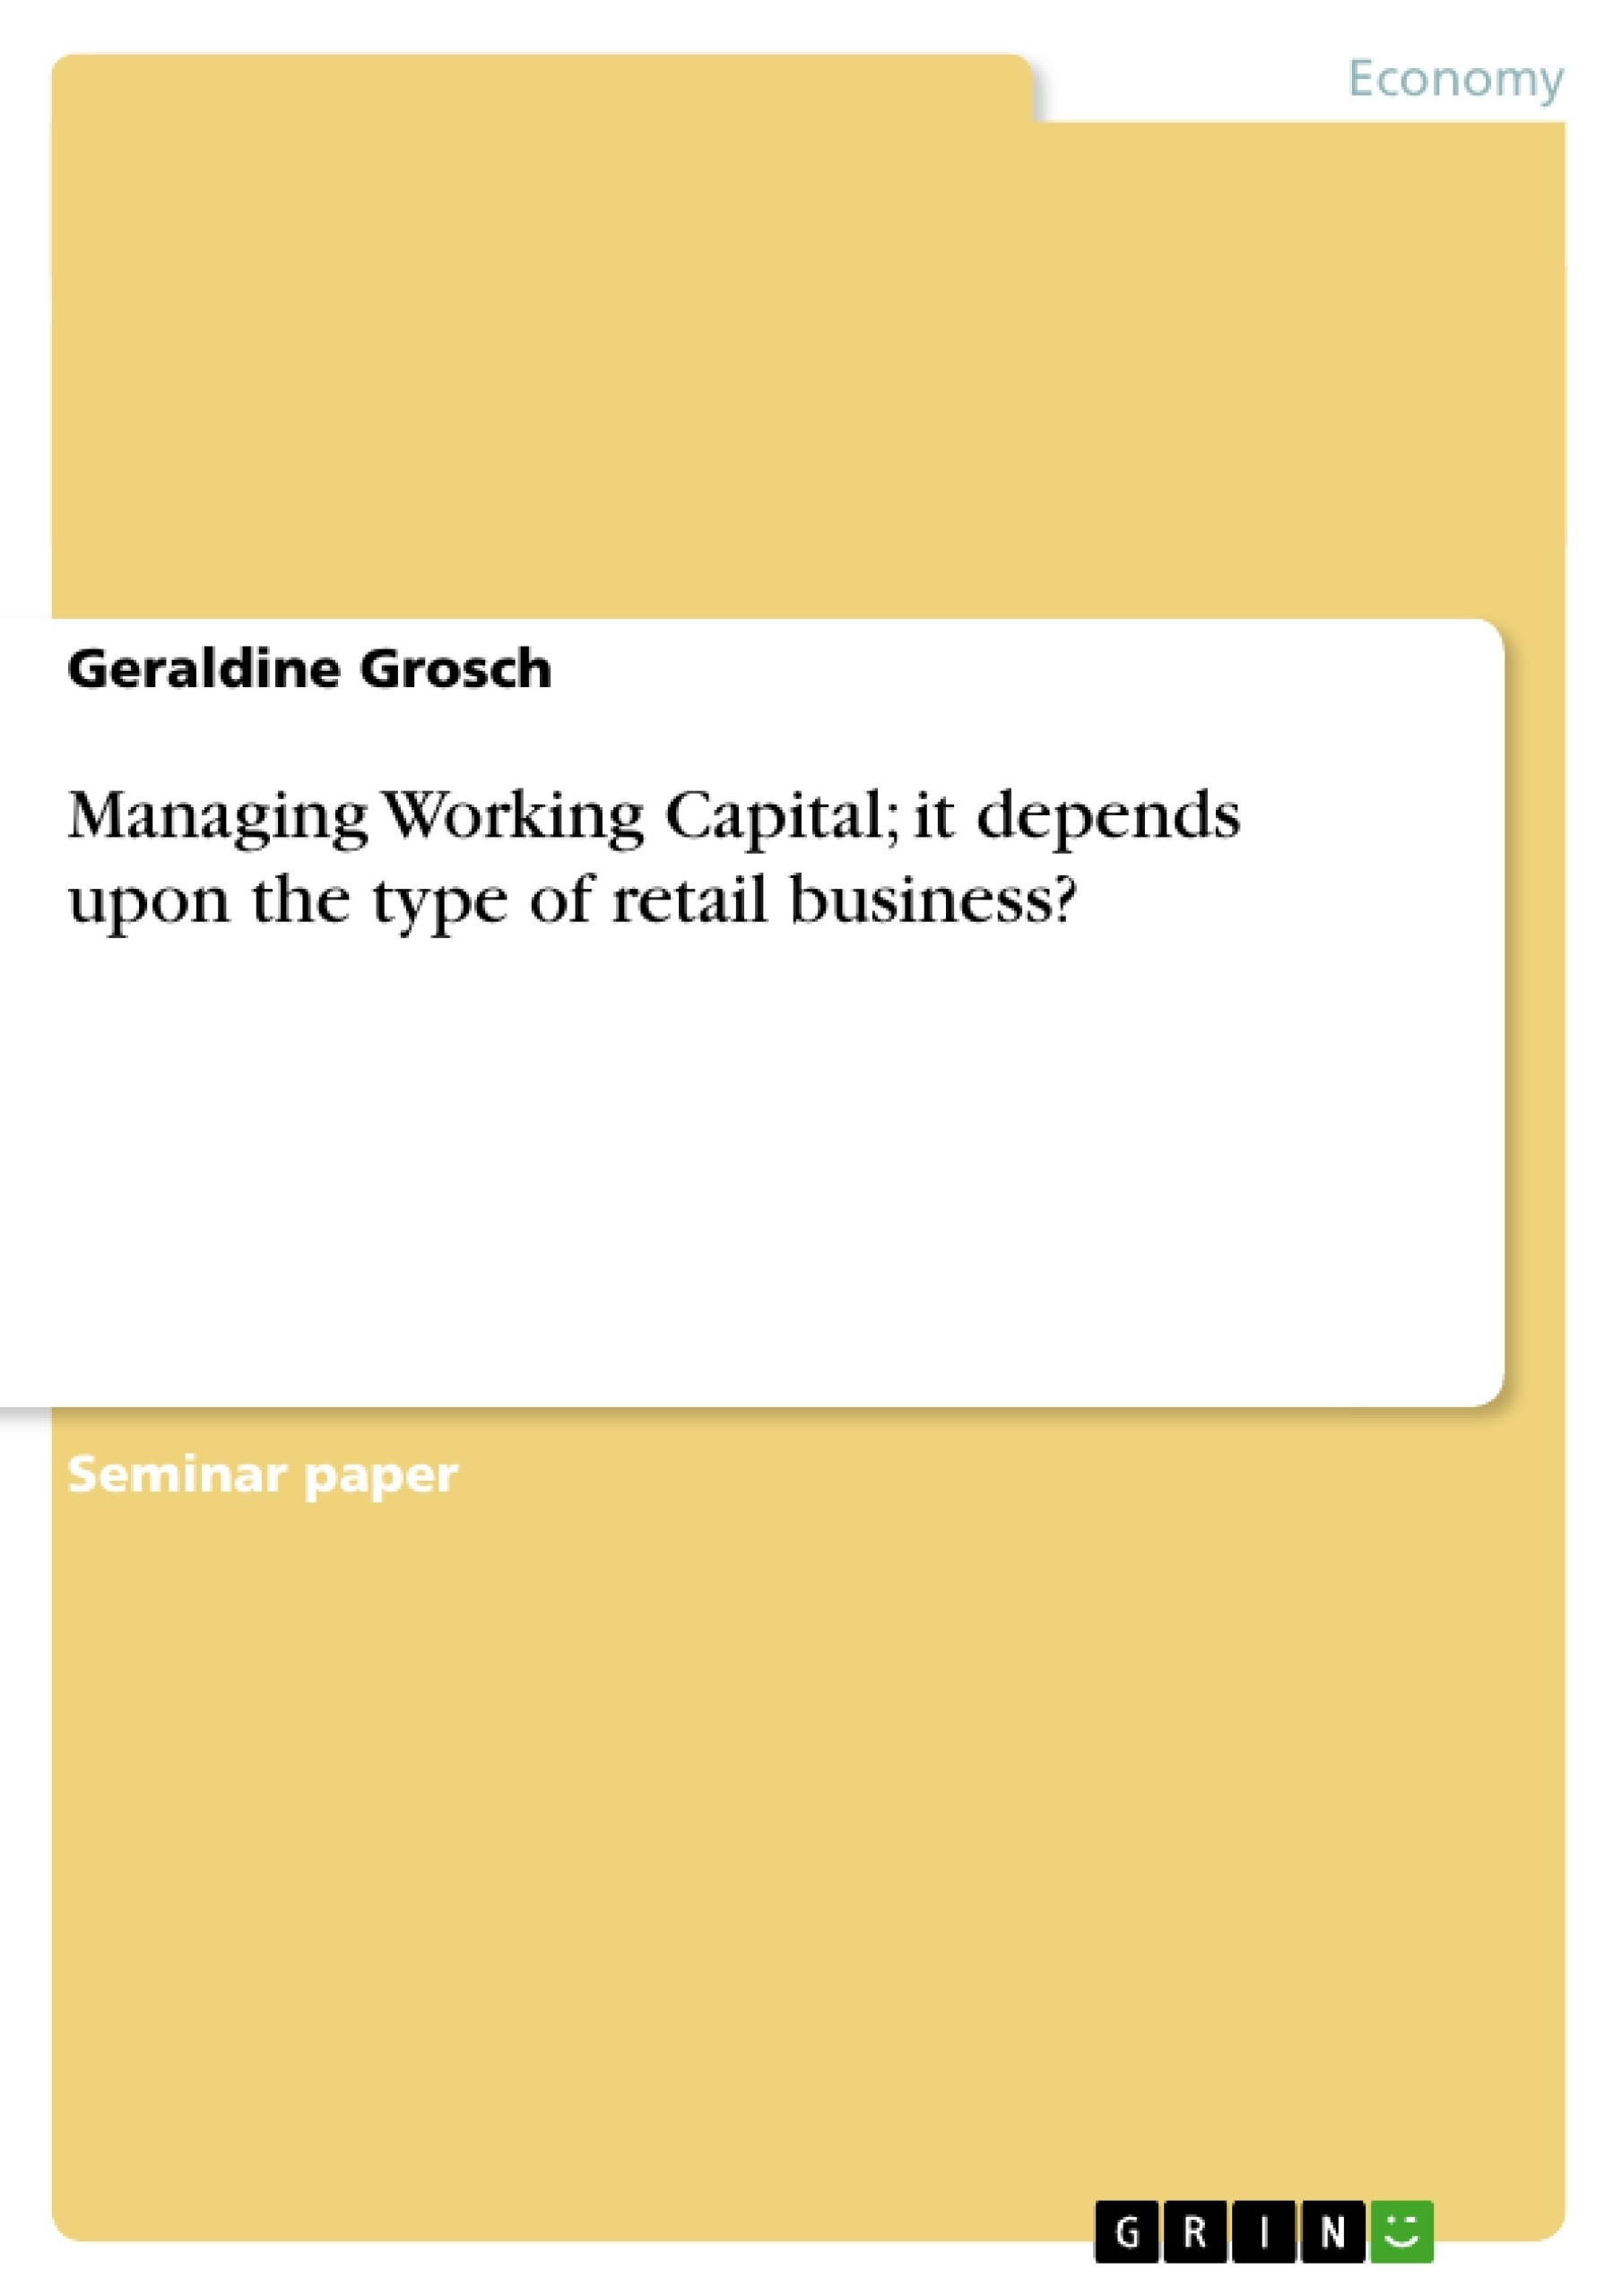 thesis on retail business What are some good ecommerce related topics to write on for a bachelor's thesis  how do i research retail businesses  what are the good topics for research .